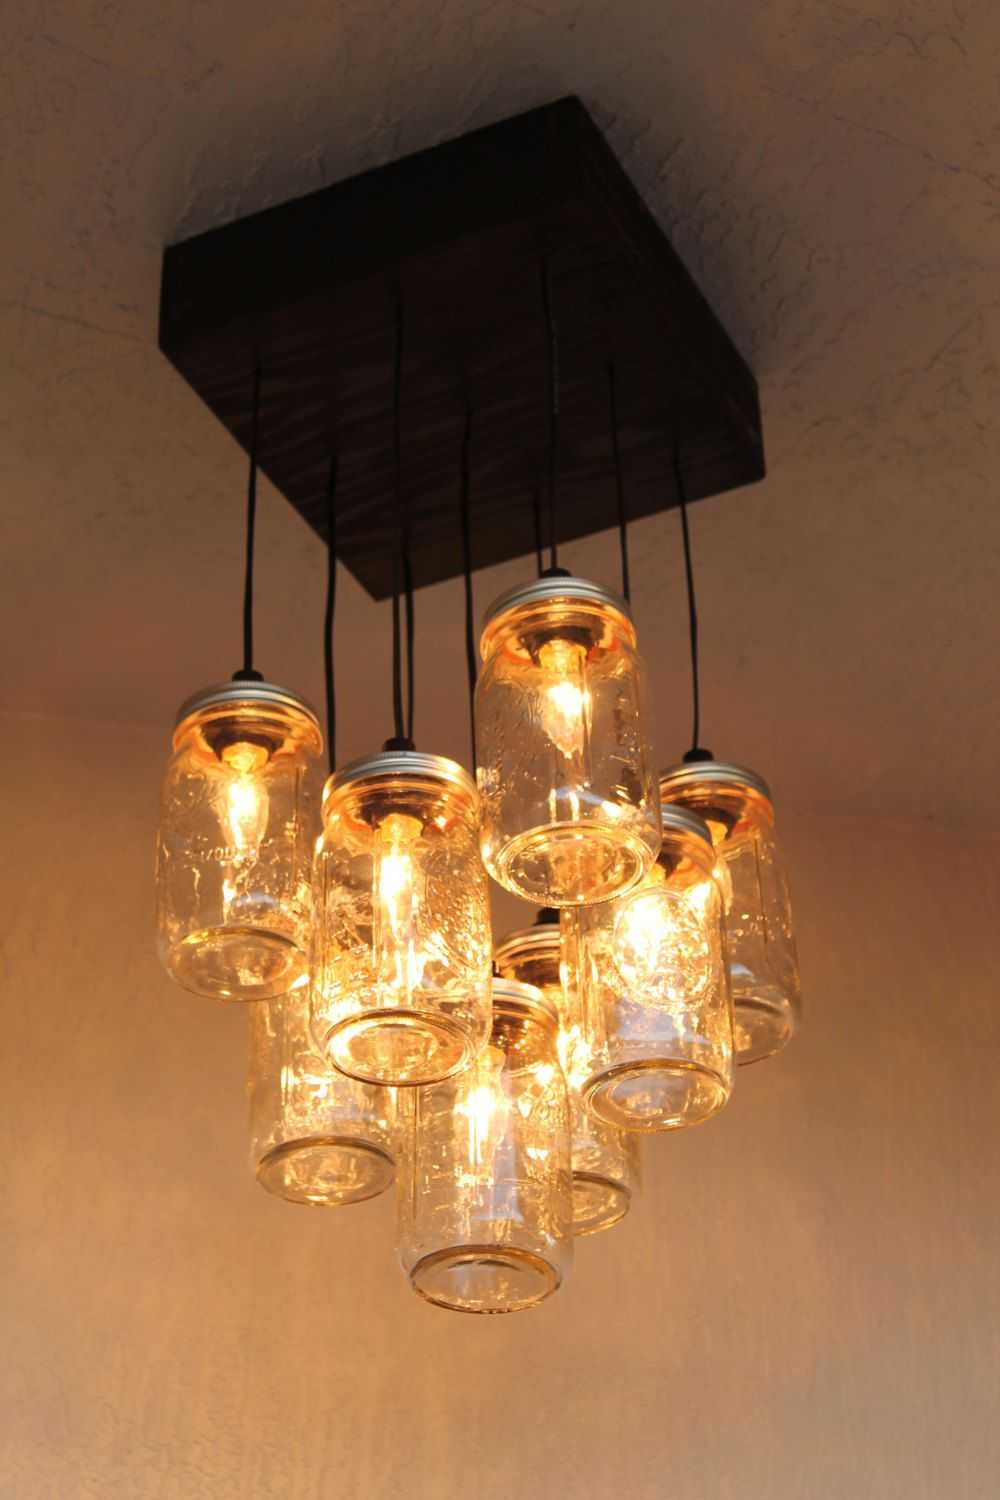 Mason Jar Chandelier The Antuanette Ball Lighting 9 Canning Lamp Rustic By Partyandhomedesign On Etsy